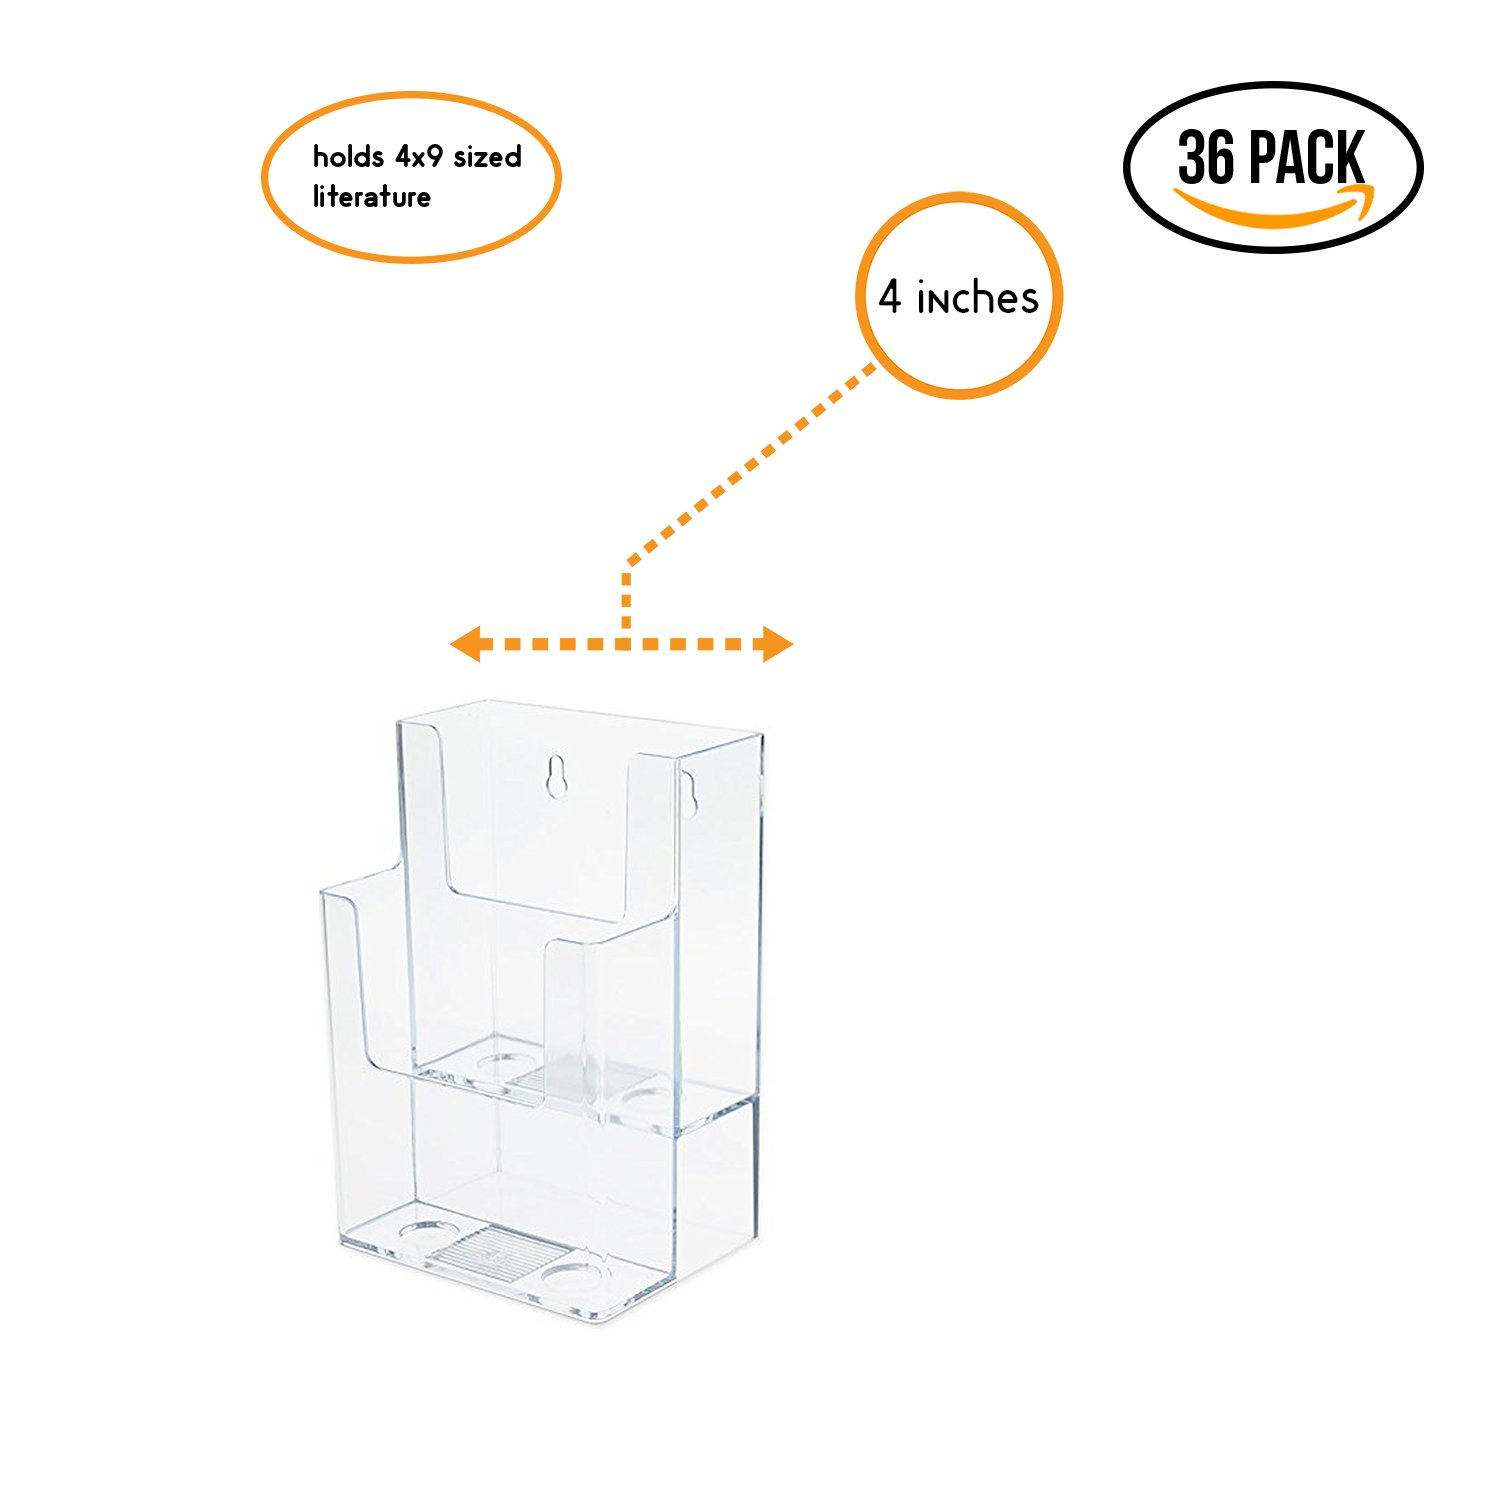 Source One LLC 4-Inch Wide 2 Tier TriFold Brochure Holder, Clea (36 Pack)